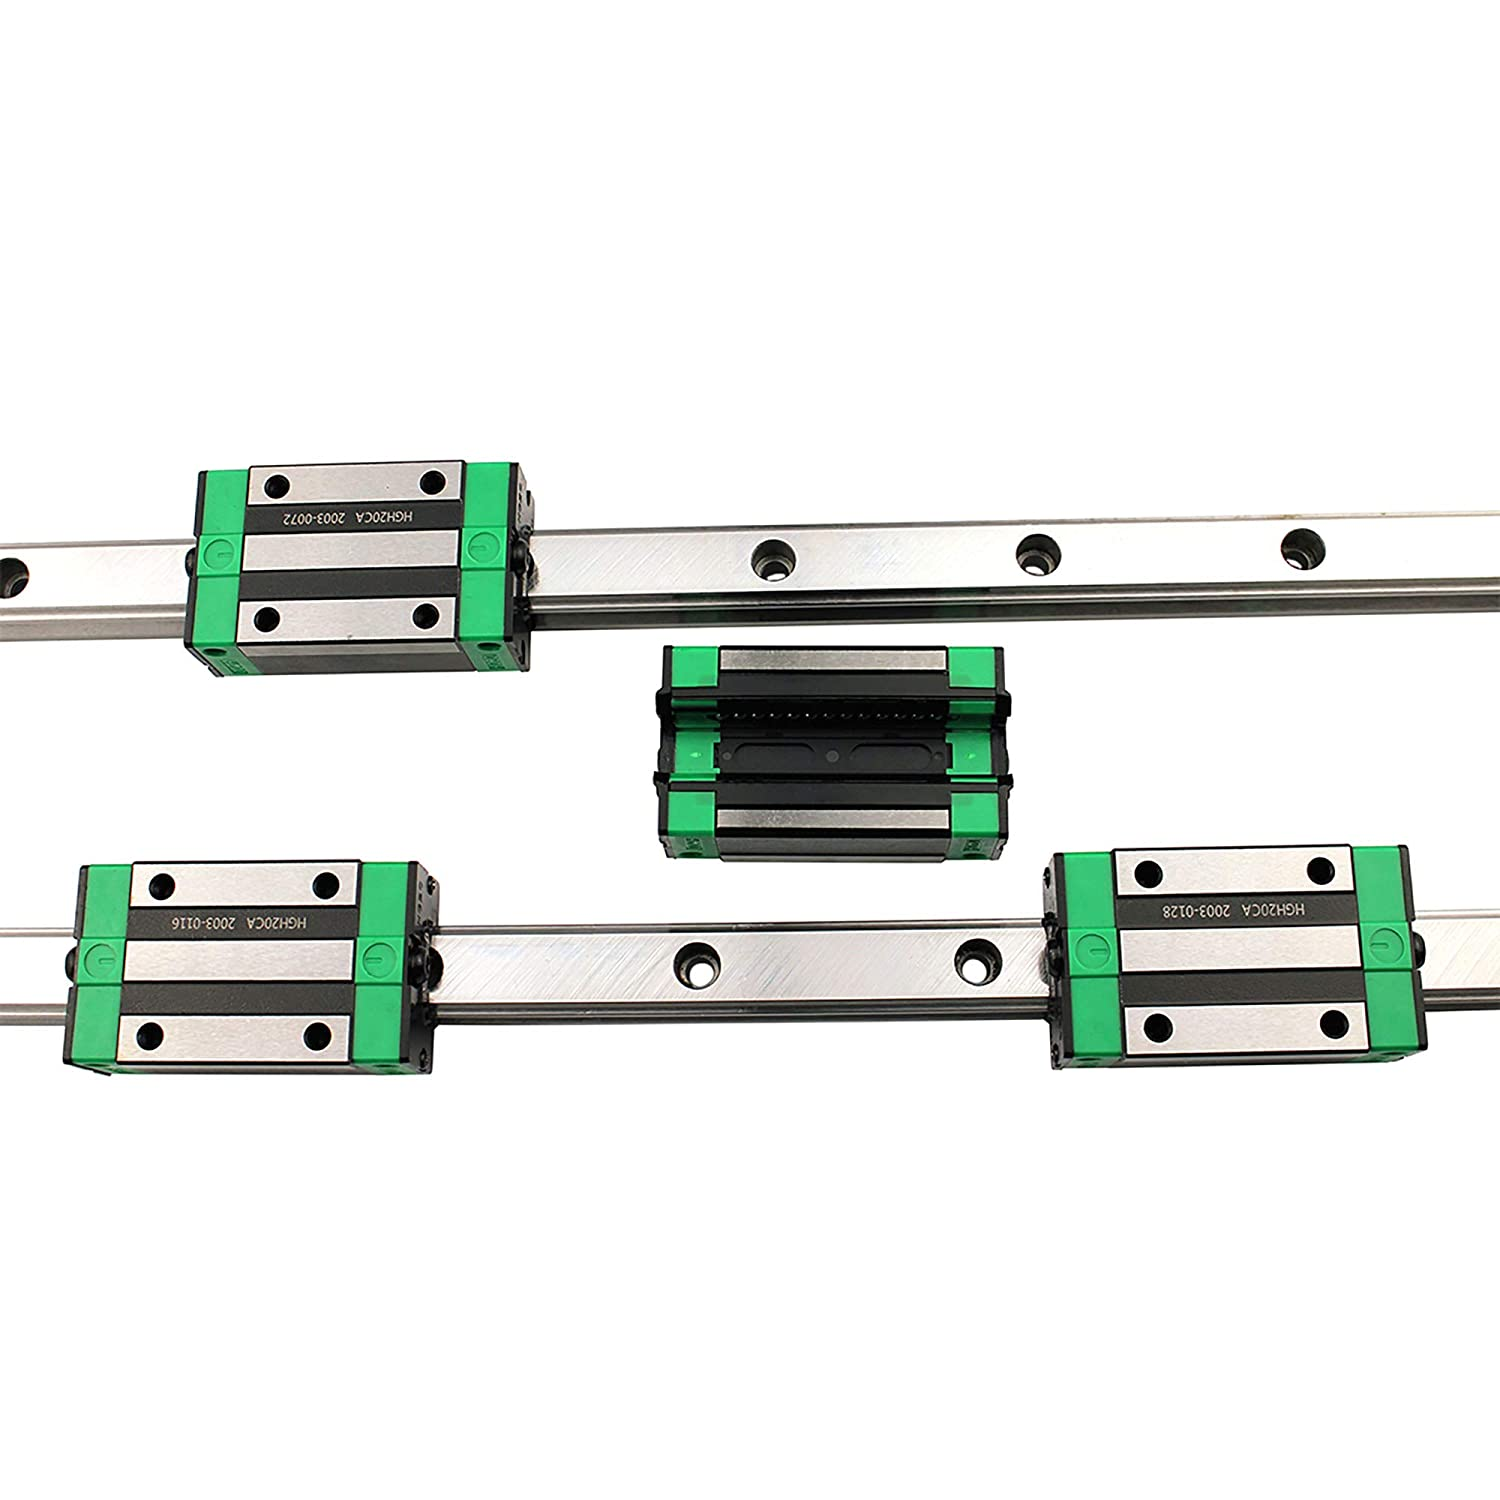 200mm 4Pcs HGH20CA Square Type Carriage Bearing Block GUWANJI 2Pcs HGR20-200mm Linear Guide Rail for DIY CNC Routers Lathes Mills Linear Slide Rail Guide Rail Length 7.8 inch